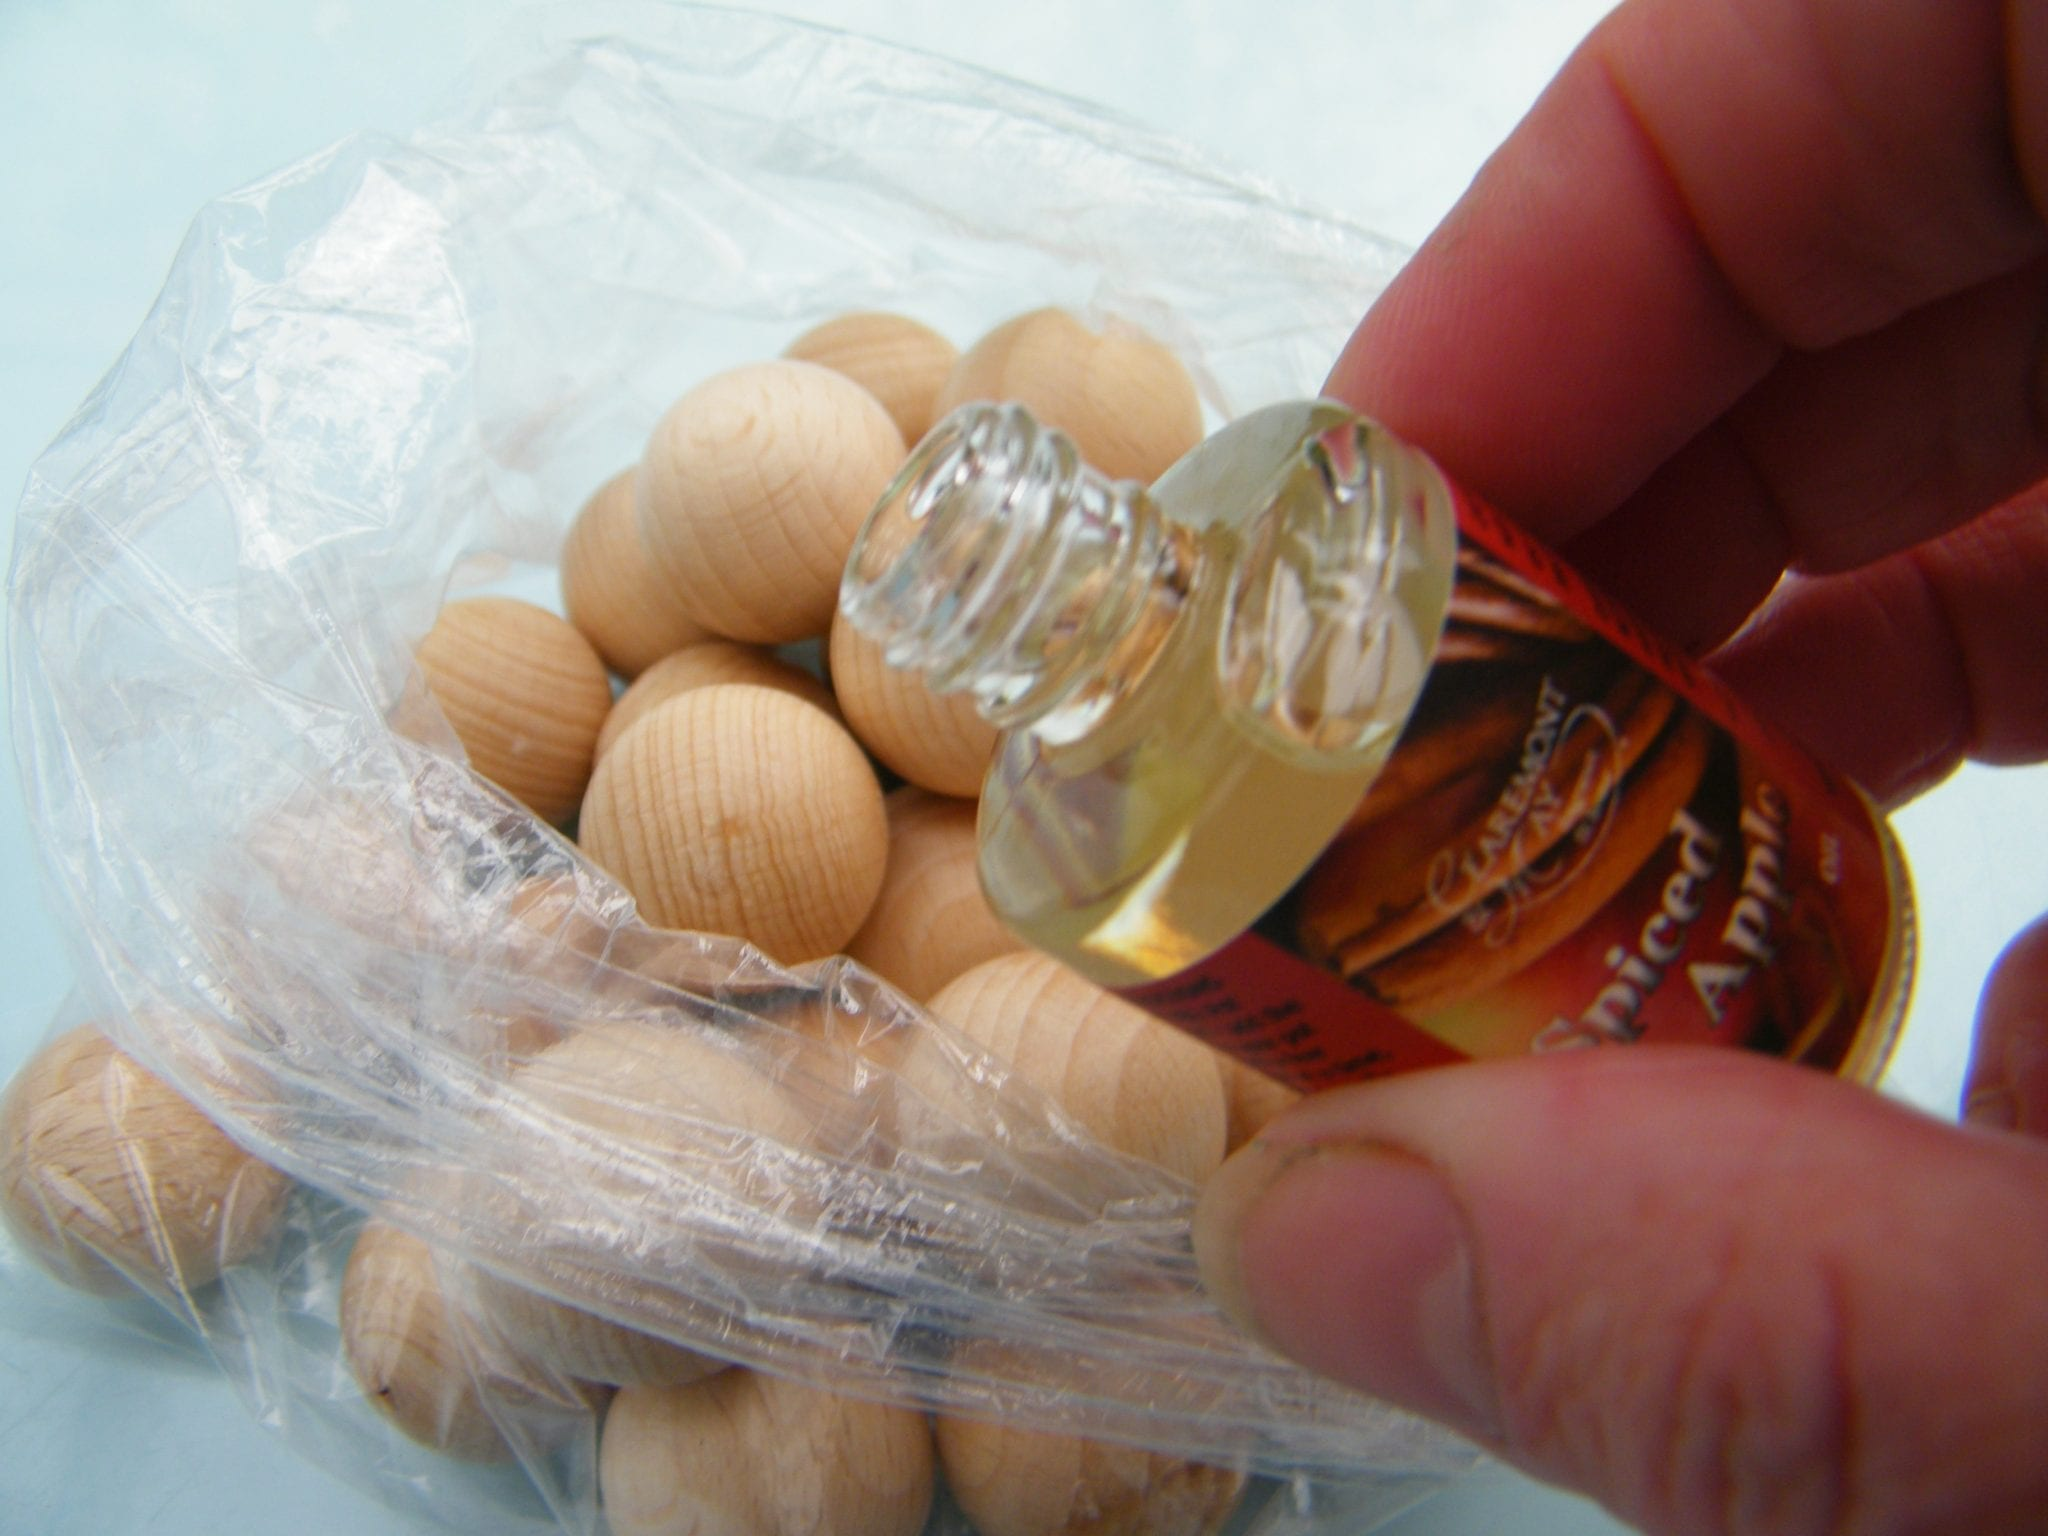 Adding fragrance oil to wooden balls